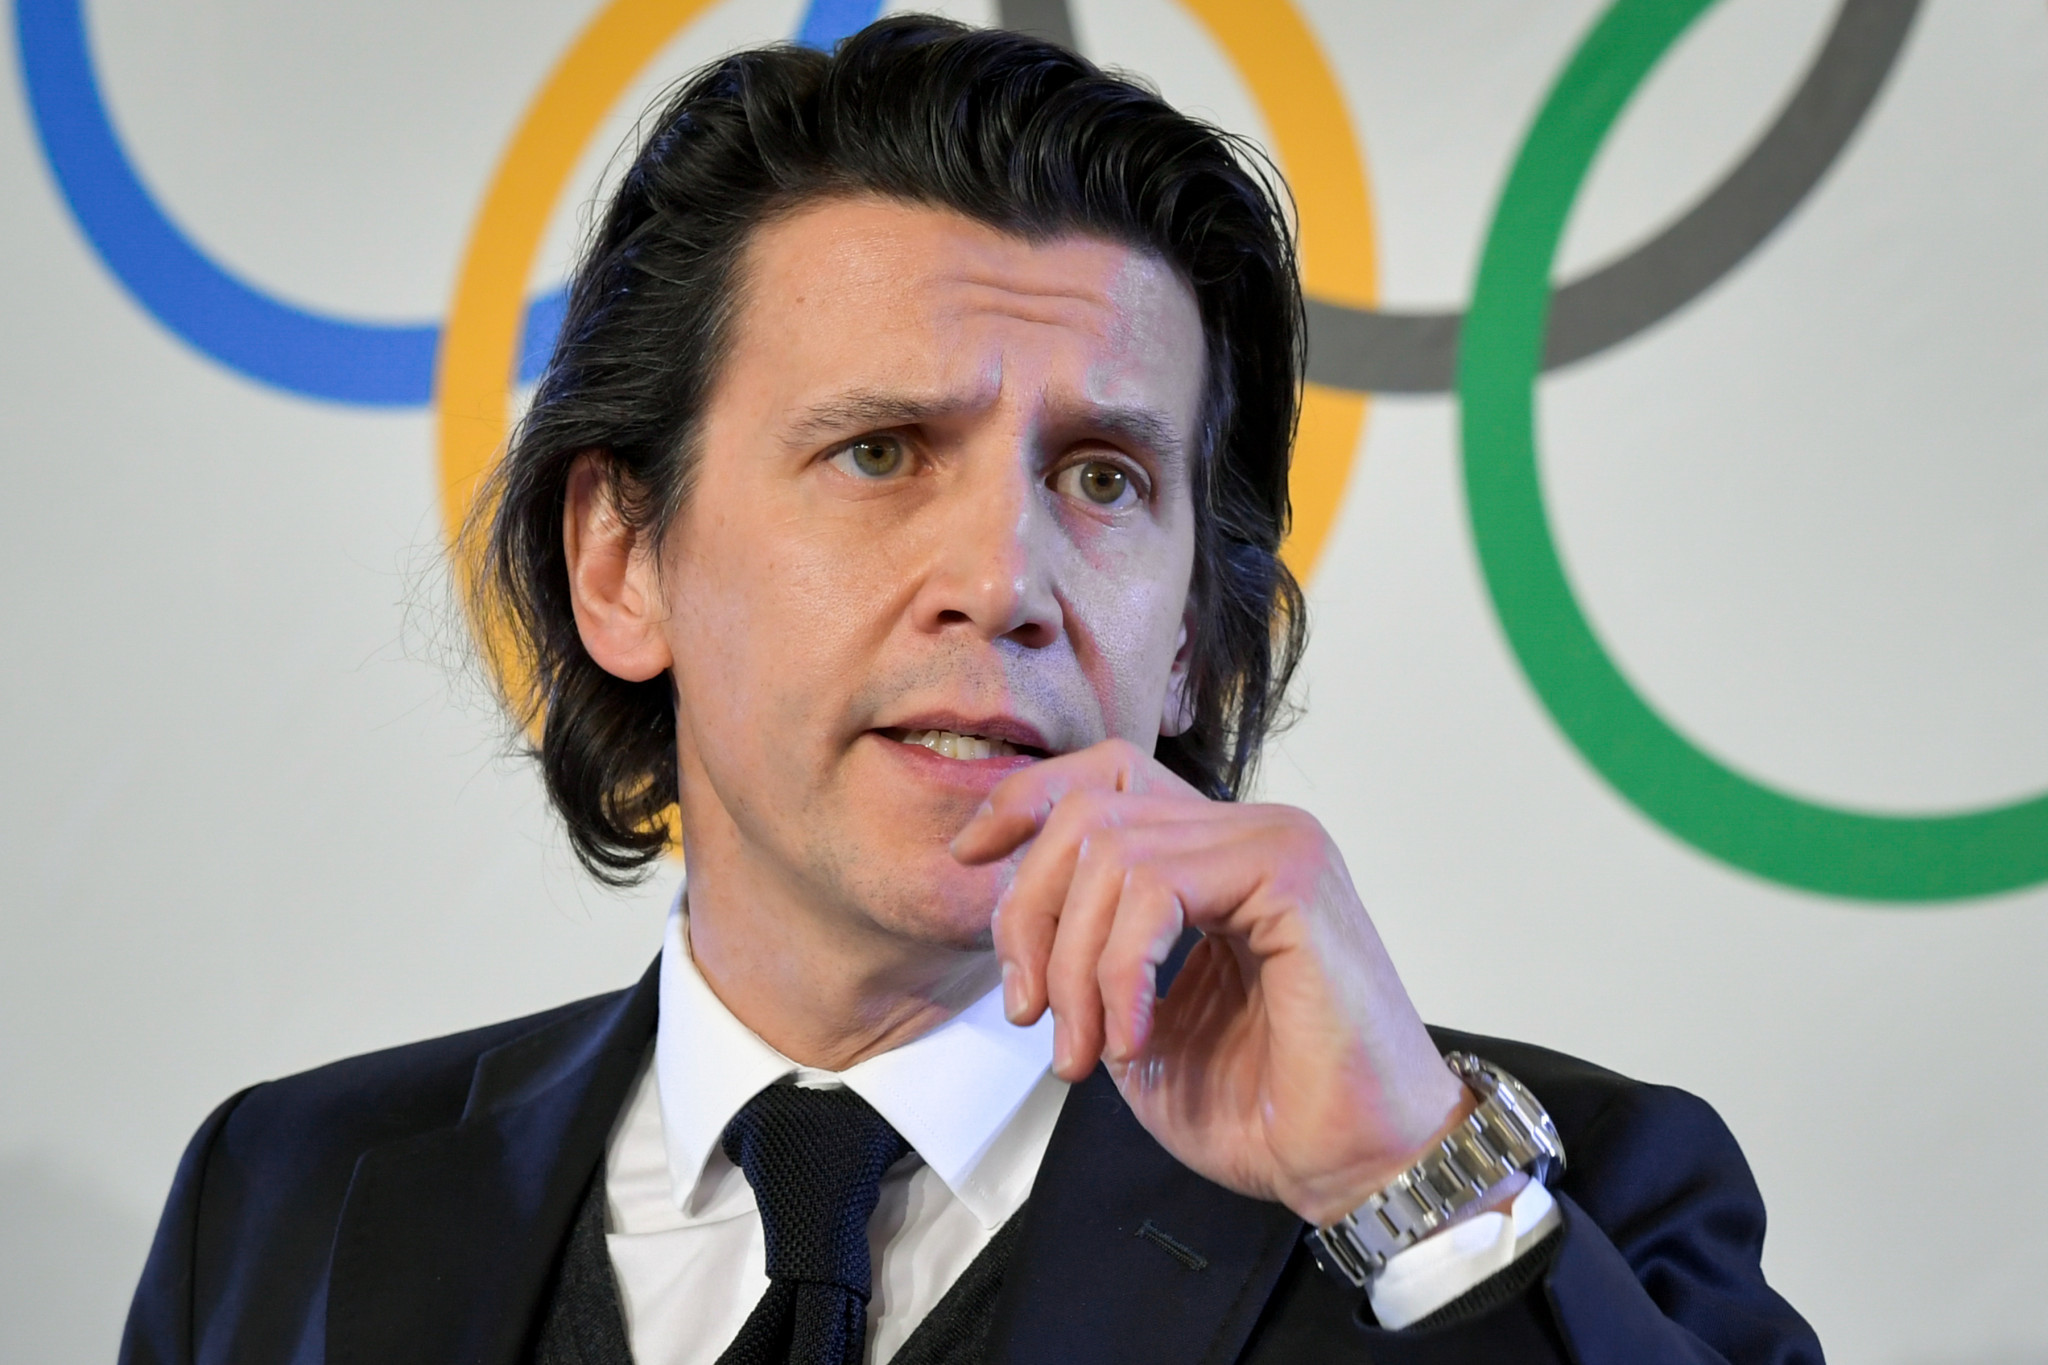 Dubi defends conduct and integrity of IOC in plea to Sion referendum voters